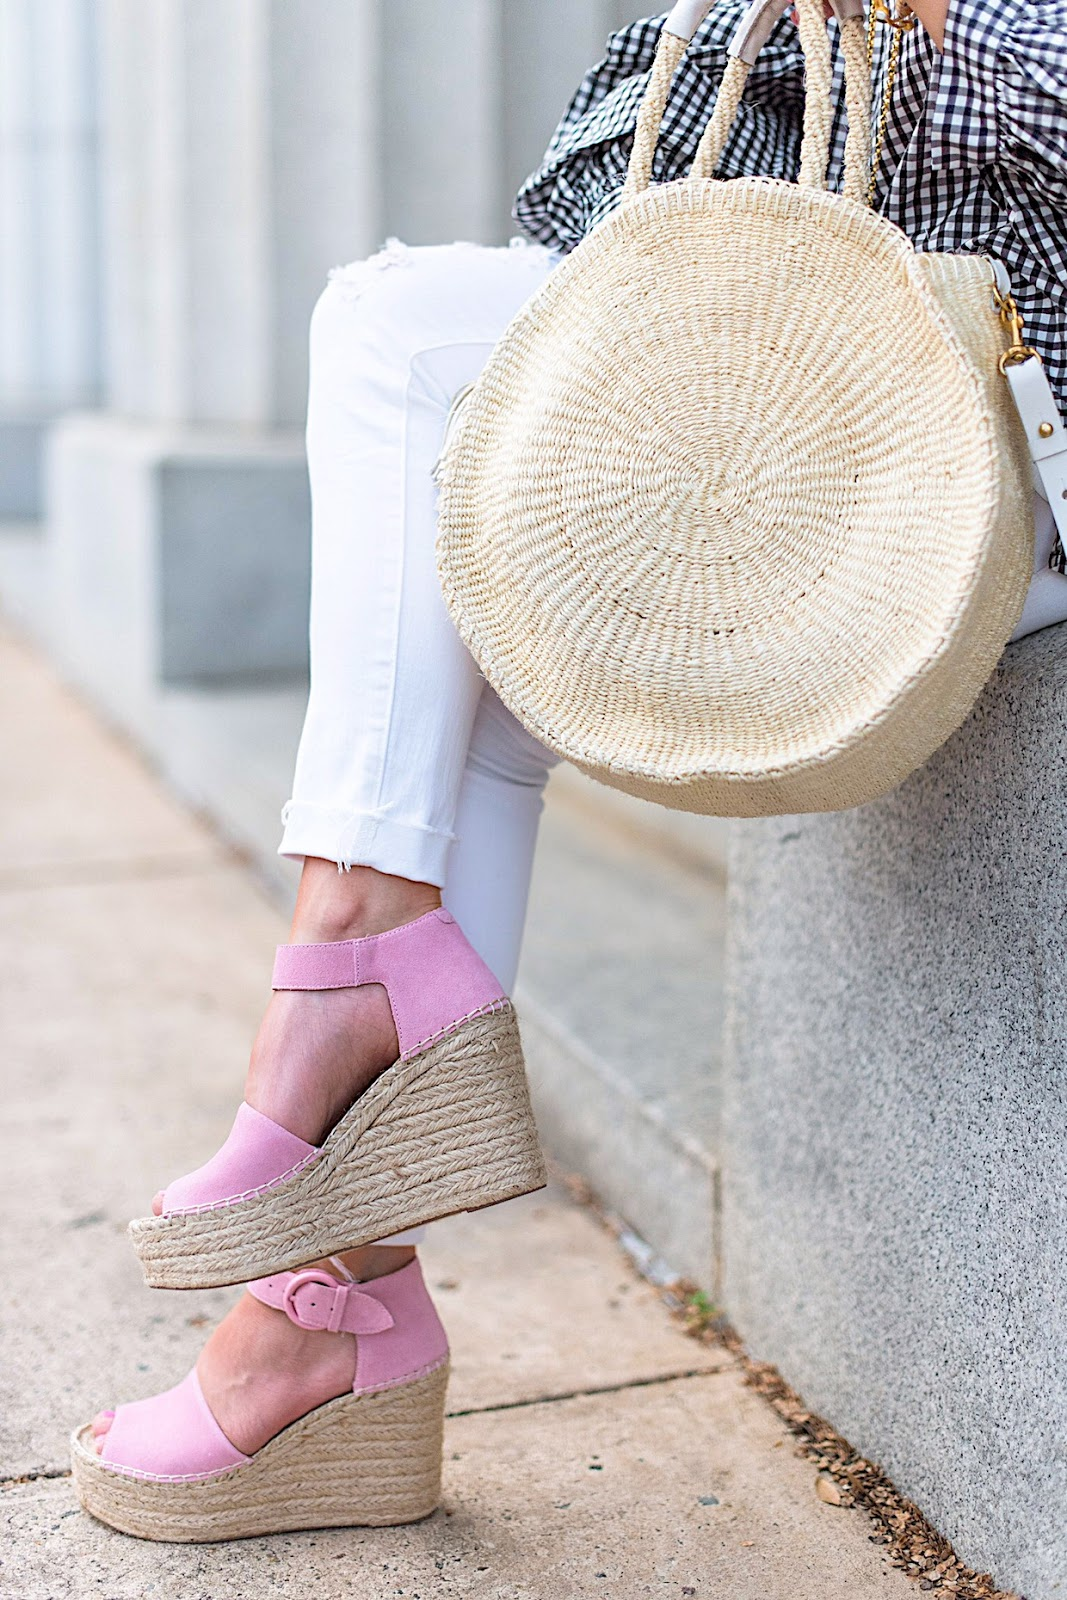 Marc Fisher Wedges & Clare V. Alice Tote - Click through to see the full post on Something Delightful Blog